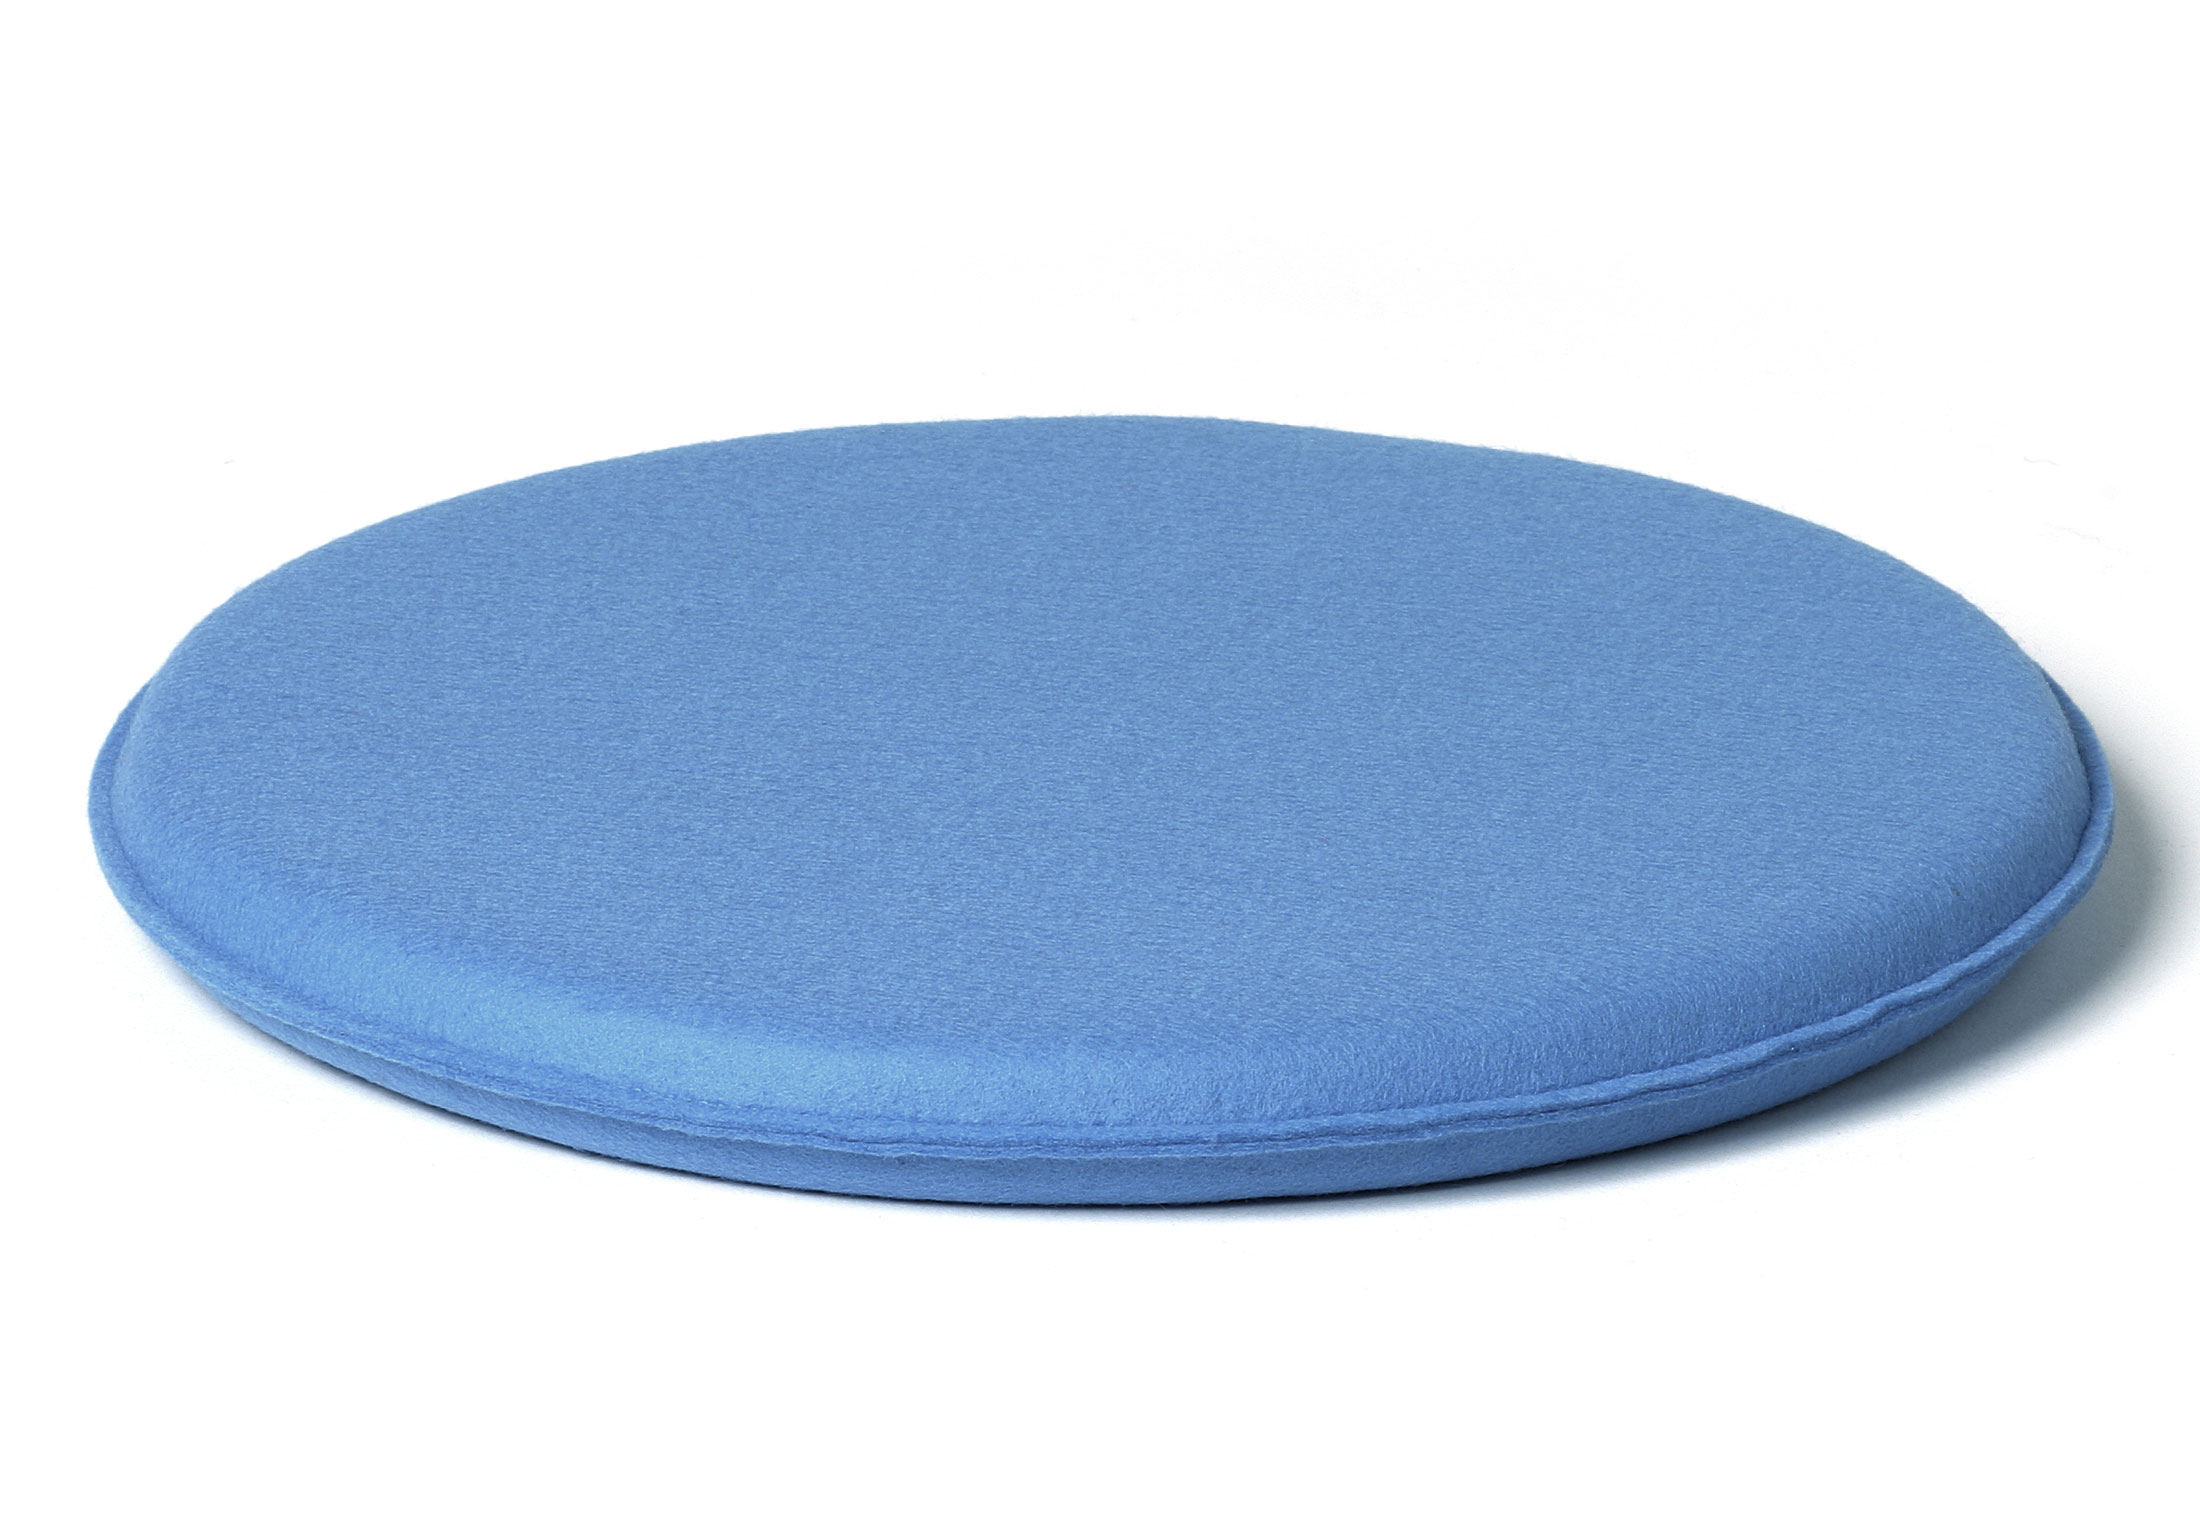 circle seat cushion sponge pad circle cushion seat pad. Black Bedroom Furniture Sets. Home Design Ideas